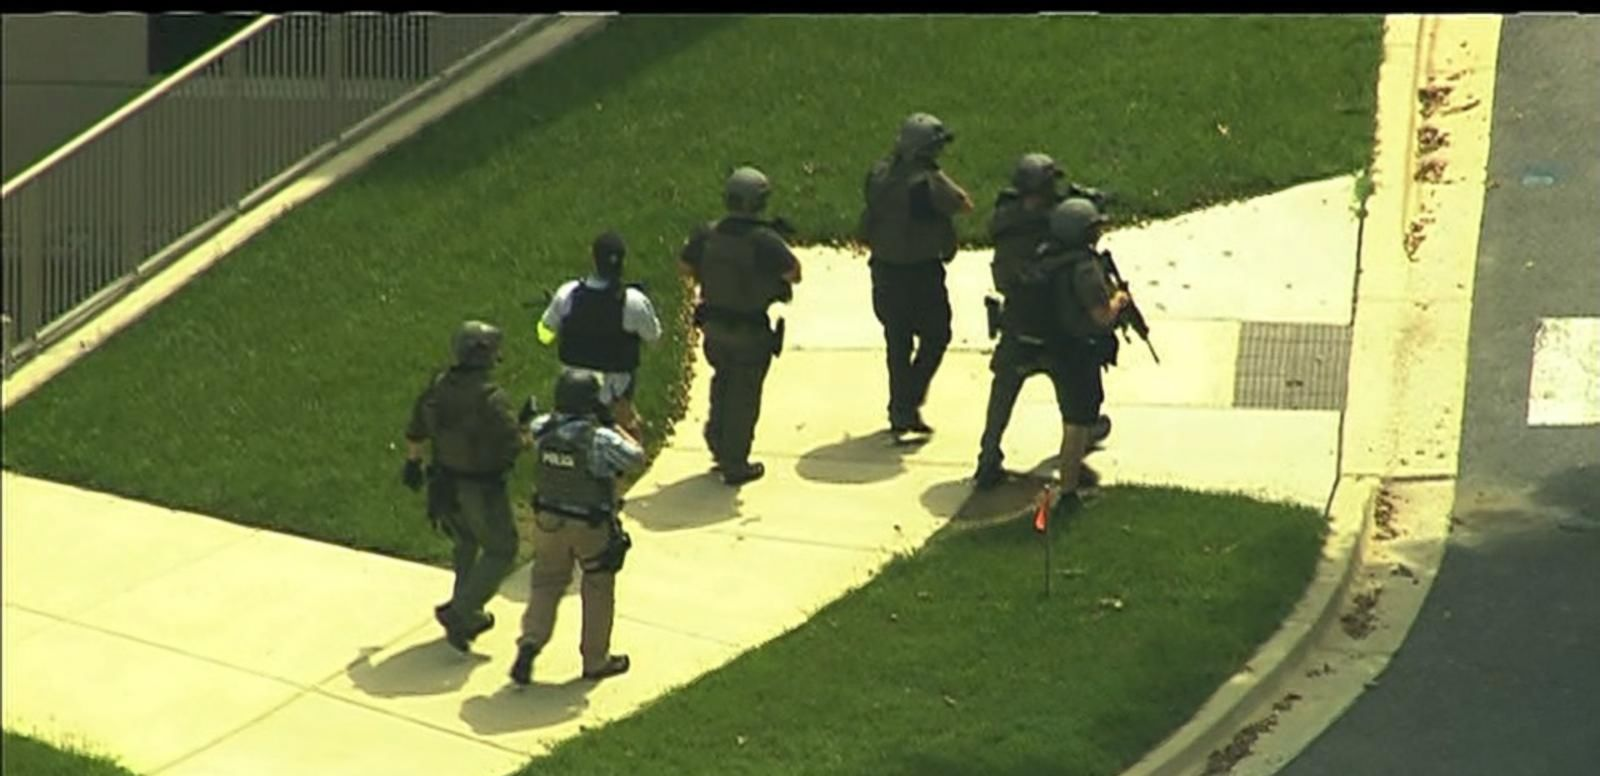 VIDEO: America on Alert: Reports of a Shooter Send Walter Reed Medical Center Into Lockdown